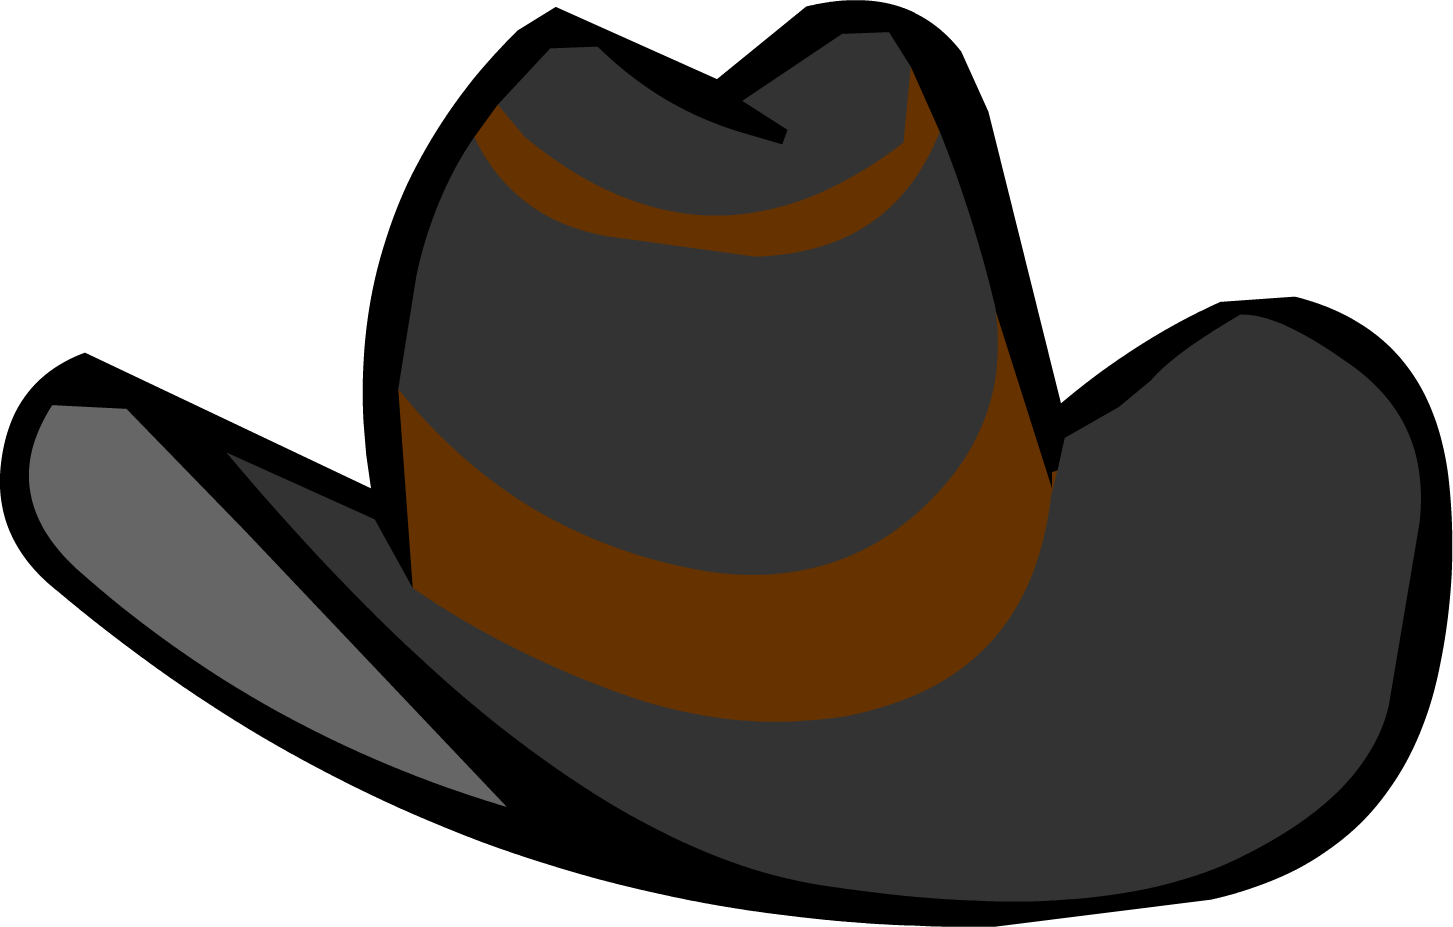 Download Free Cowboy Hat Vector Png Transparent Background Free Download 23105 Freeiconspng Please use search to find more variants of pictures and to choose between available options. download free cowboy hat vector png